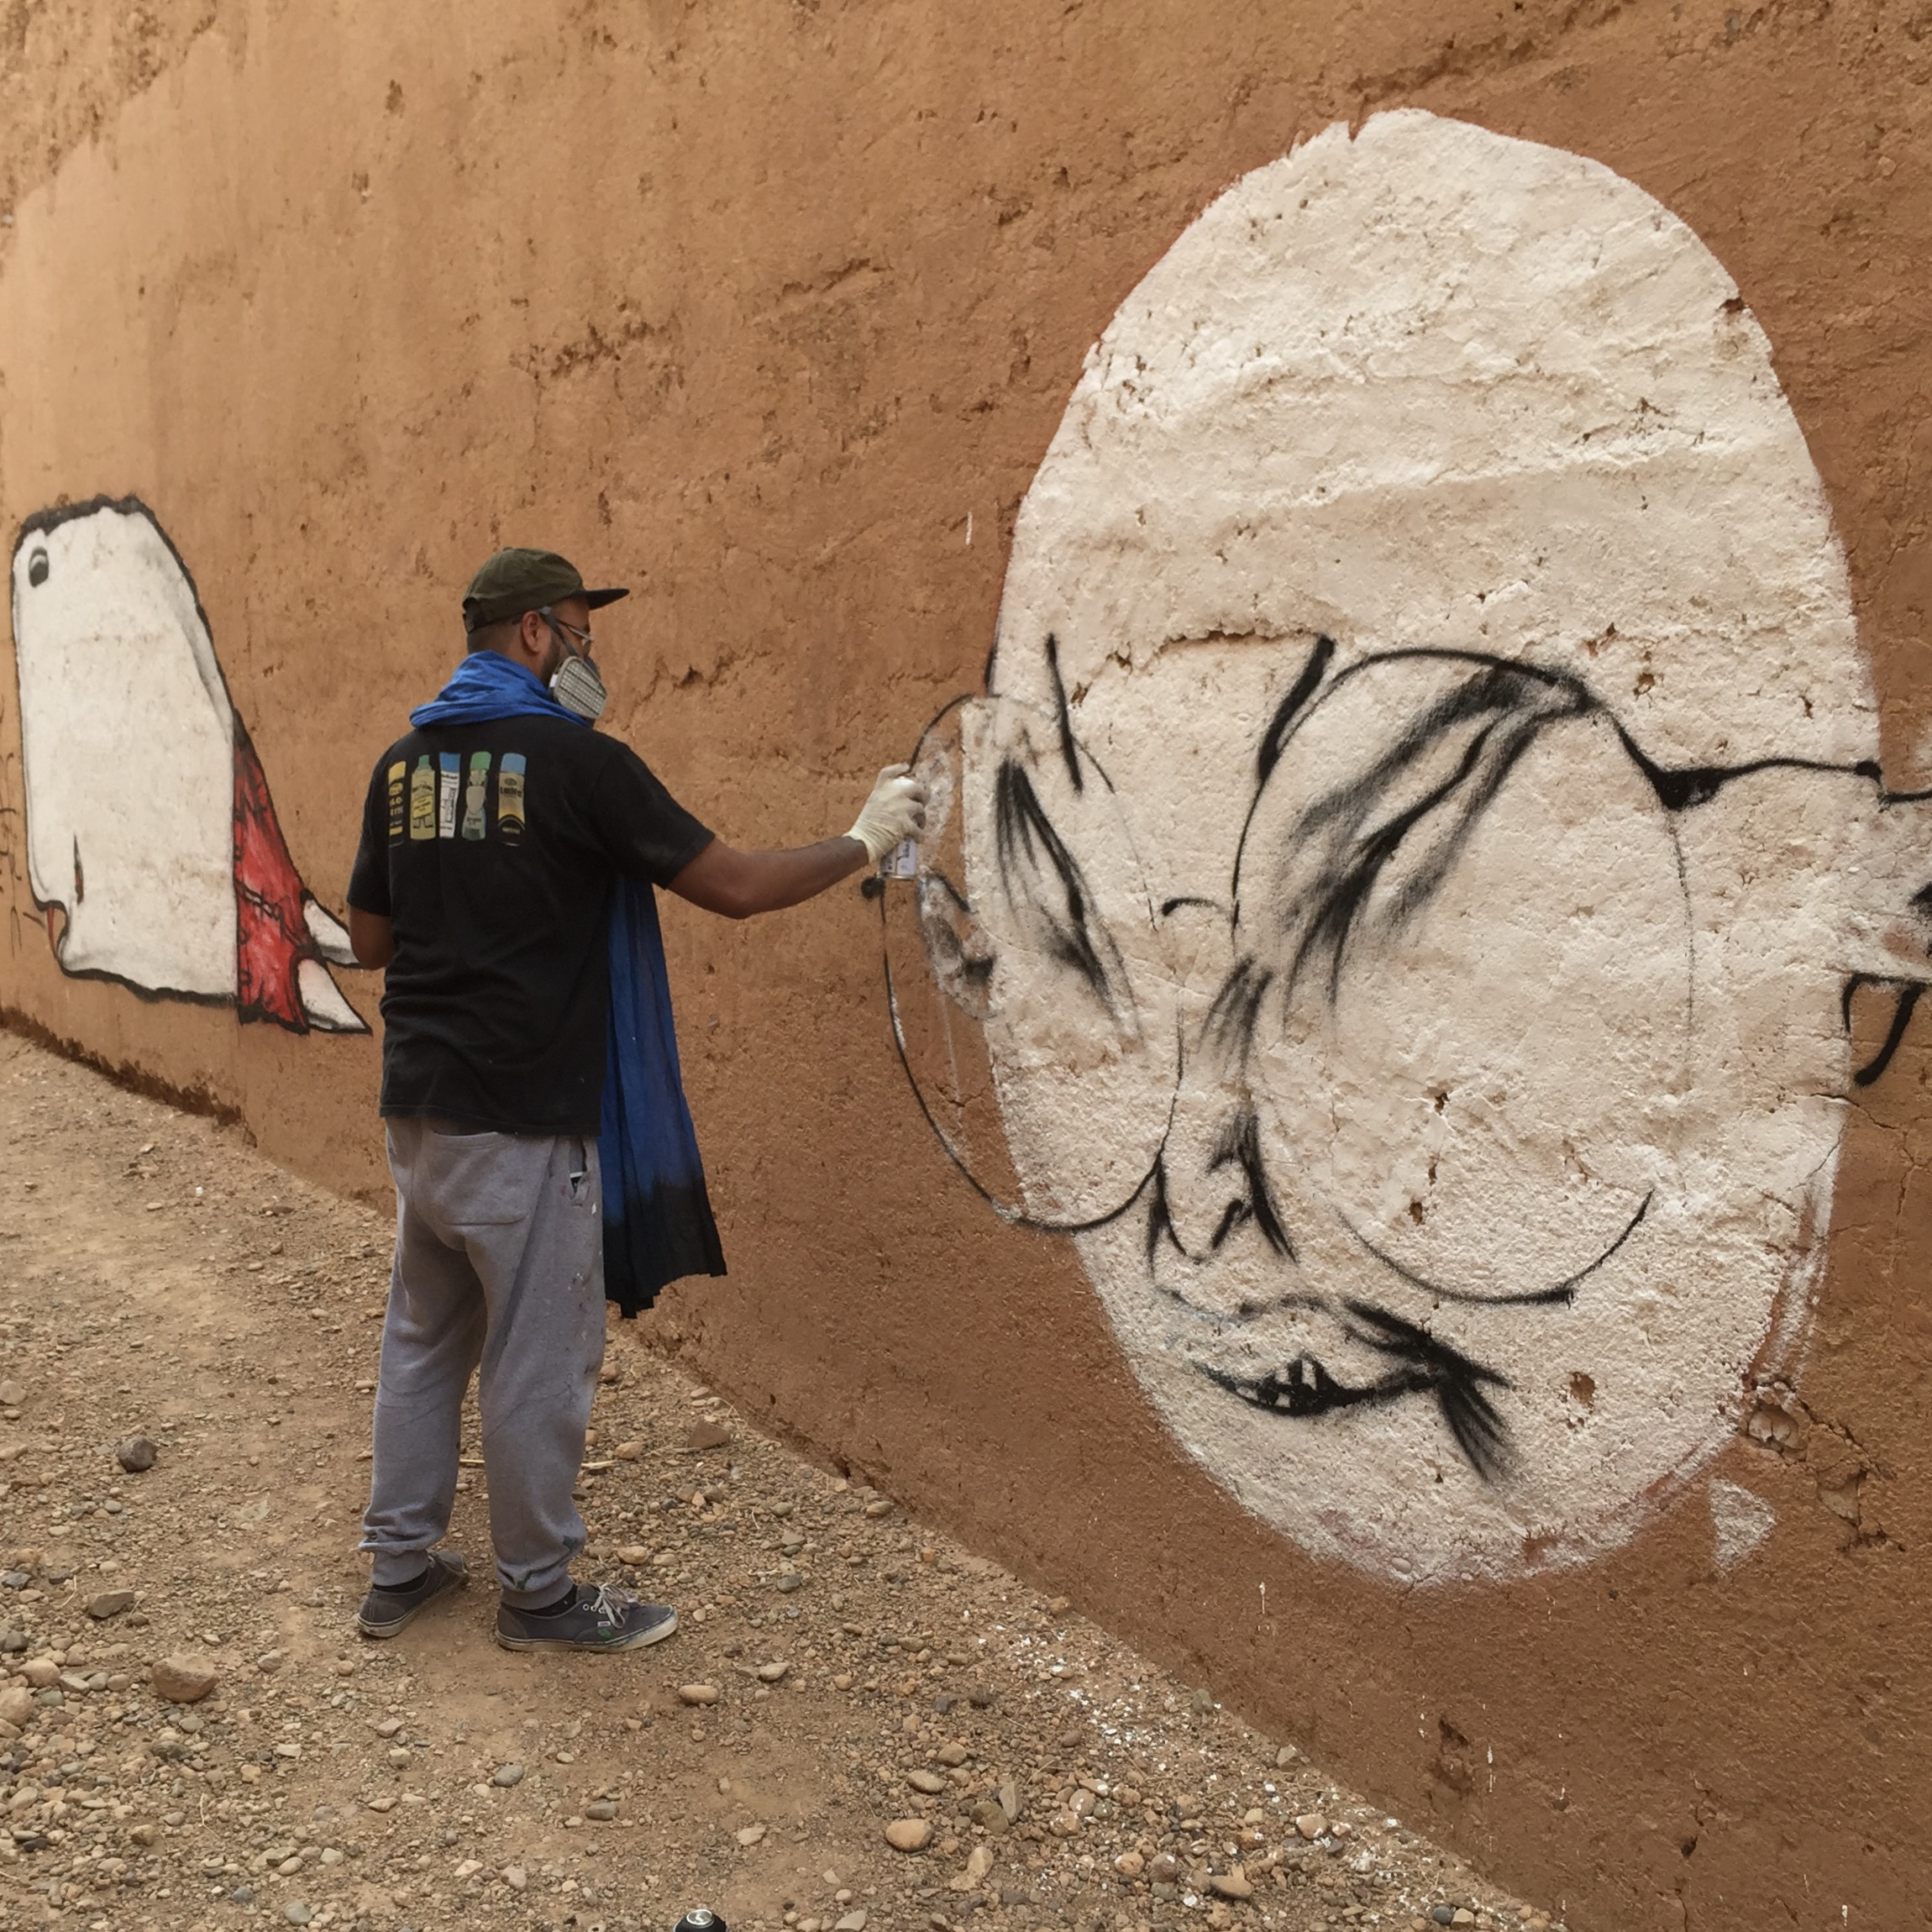 Artist Andrew Hem painting a mural for the Igloo Hong art project in Morocco 2016